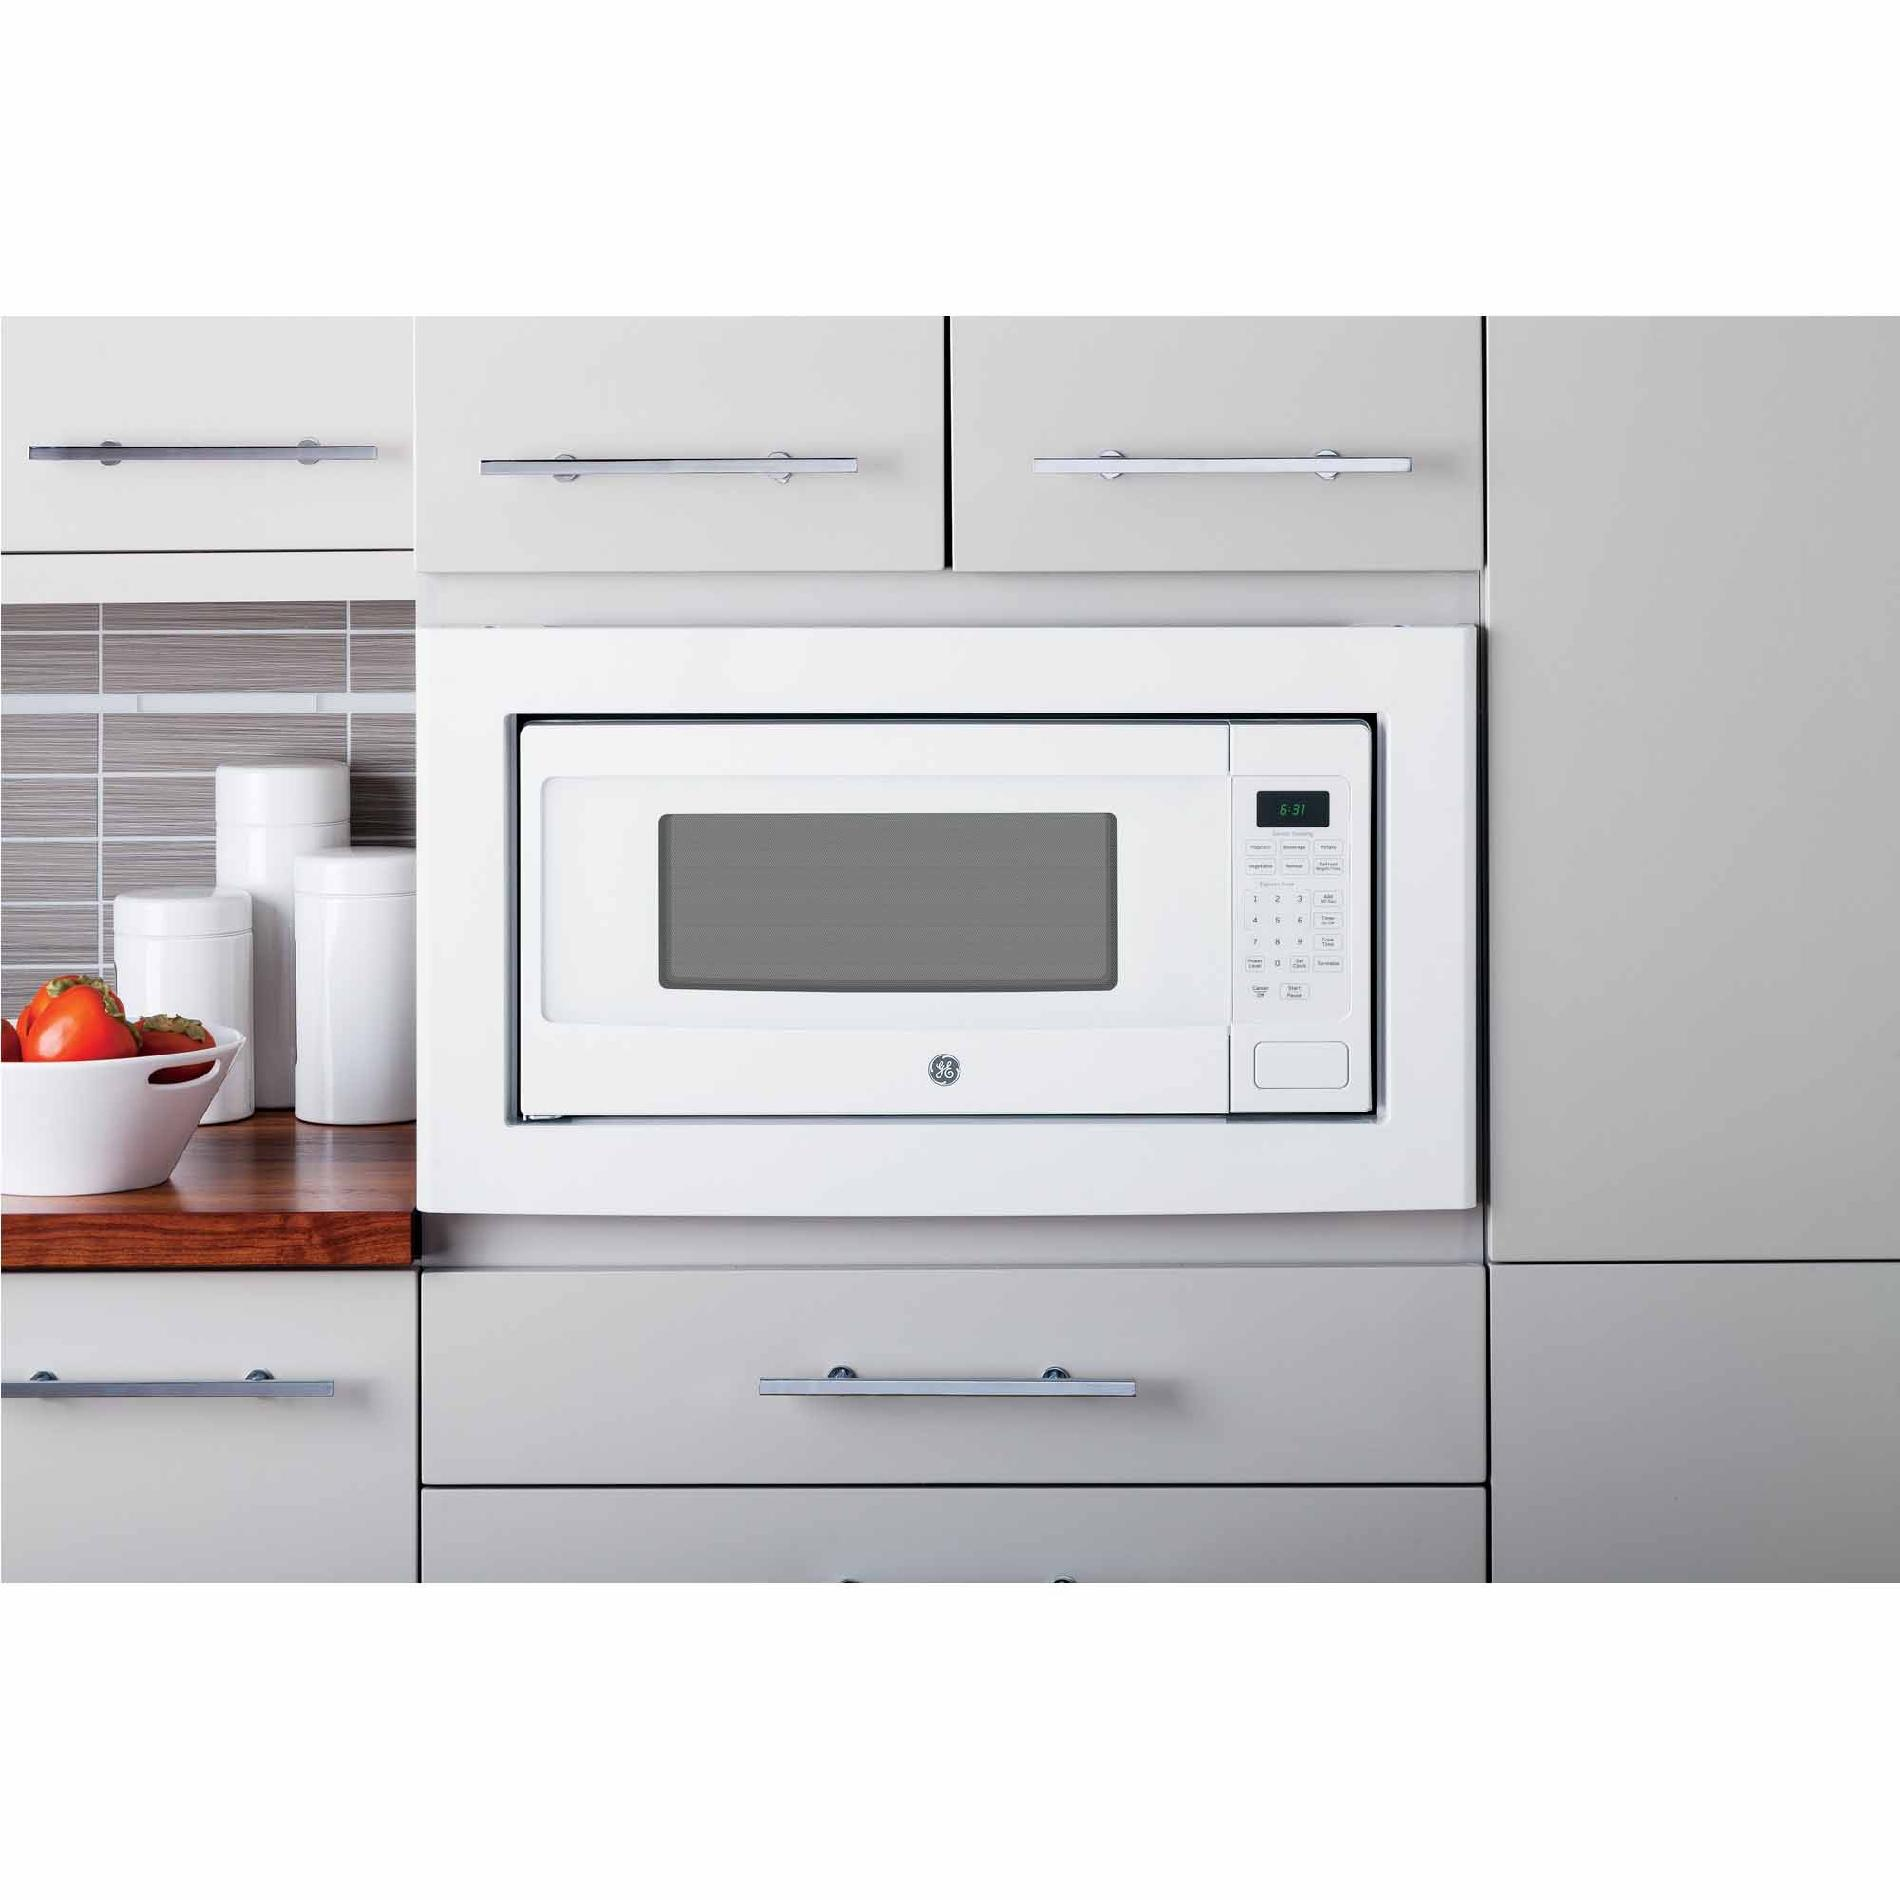 GE Profile PEM31DFWW 1.1 cu. ft. Countertop Microwave Oven - White